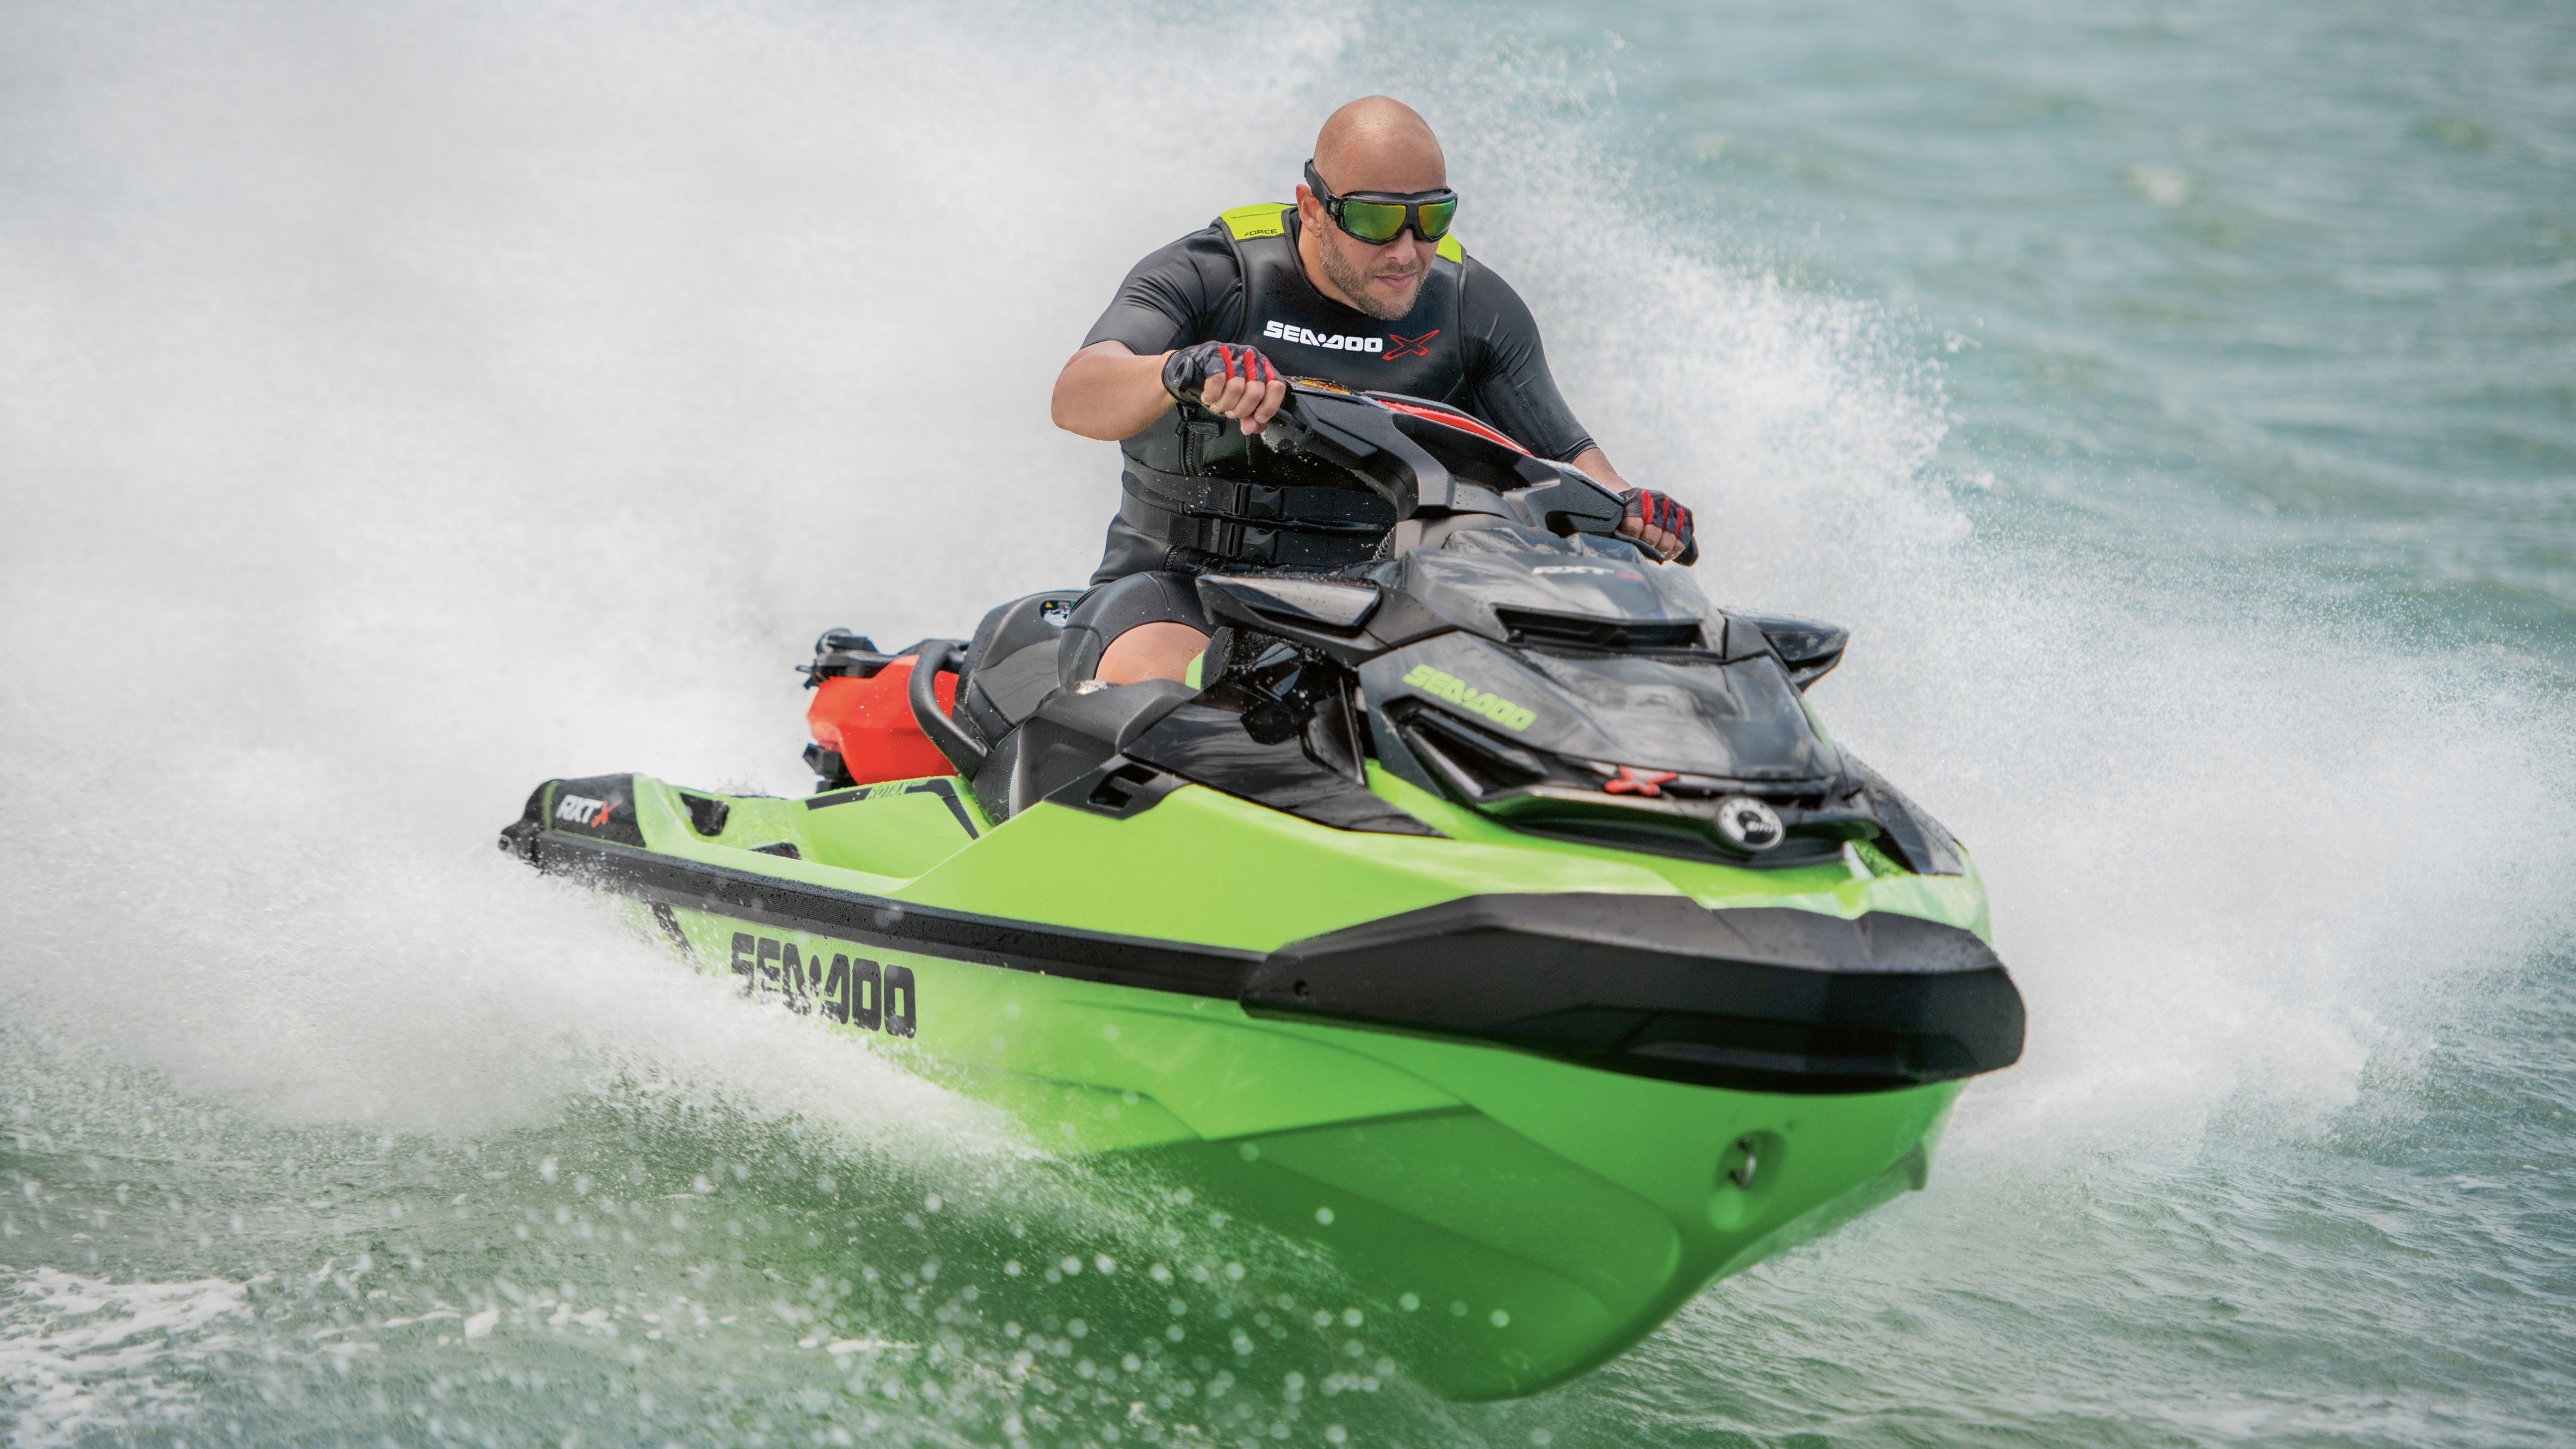 Conductor en una Sea-Doo